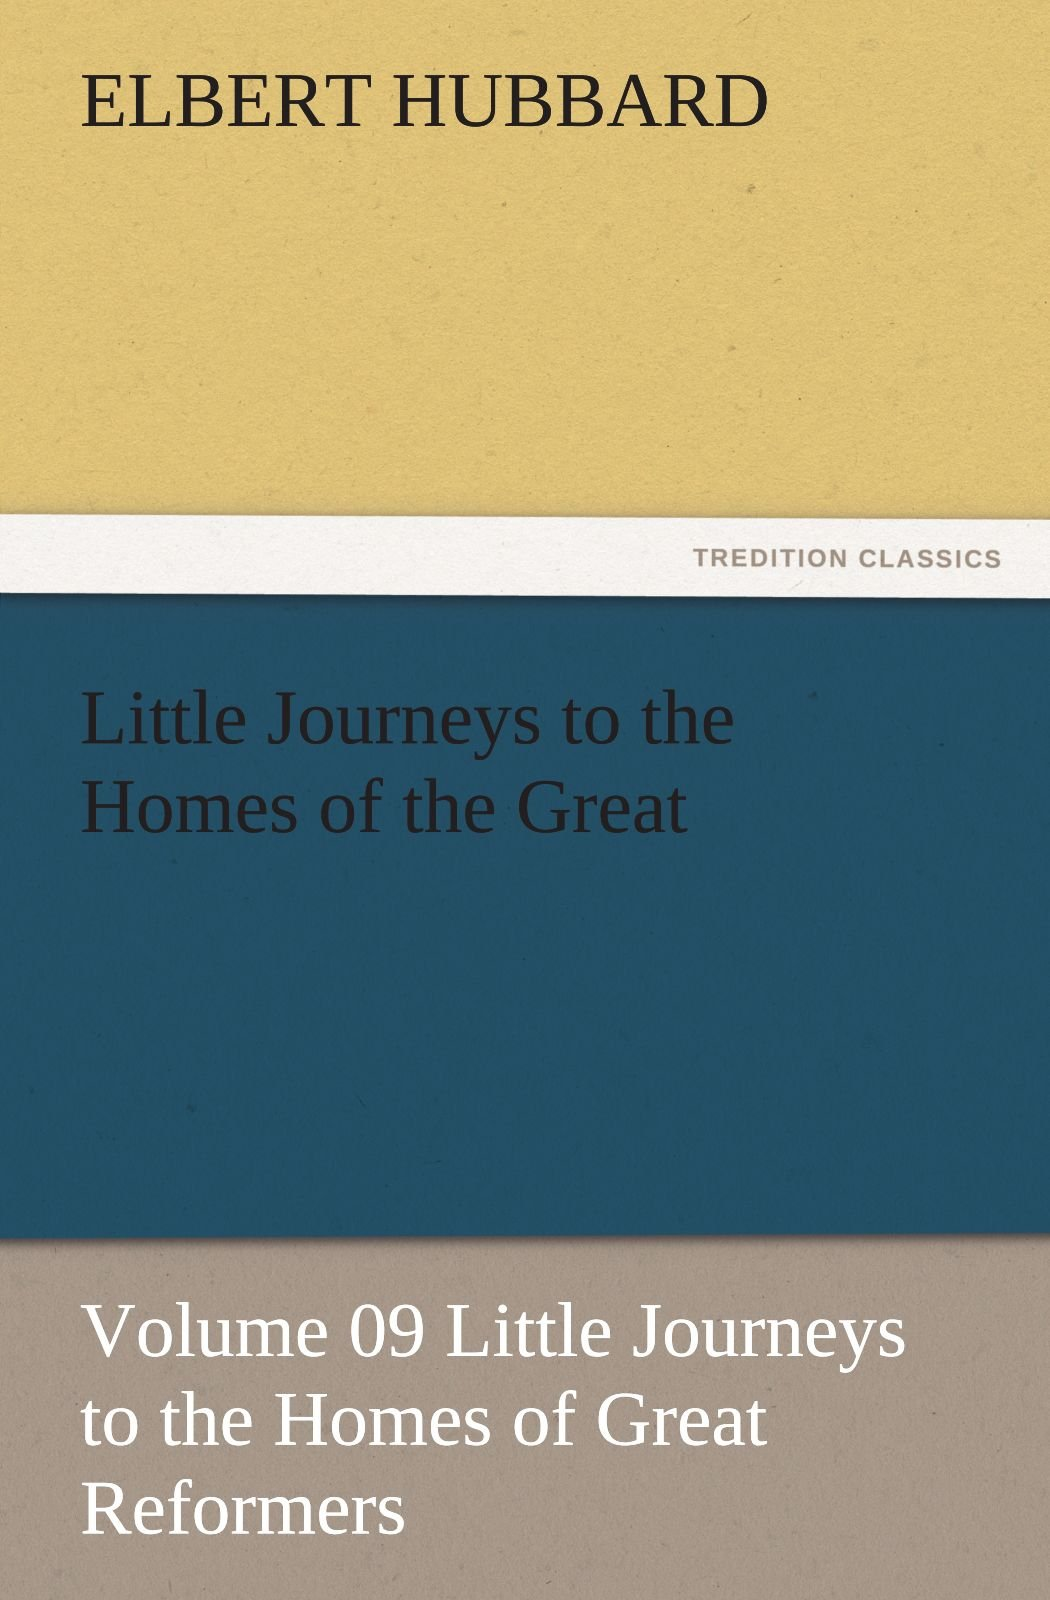 Little Journeys to the Homes of the Great - Volume 09 Little Journeys to the Homes of Great Reformers (TREDITION CLASSICS) pdf epub